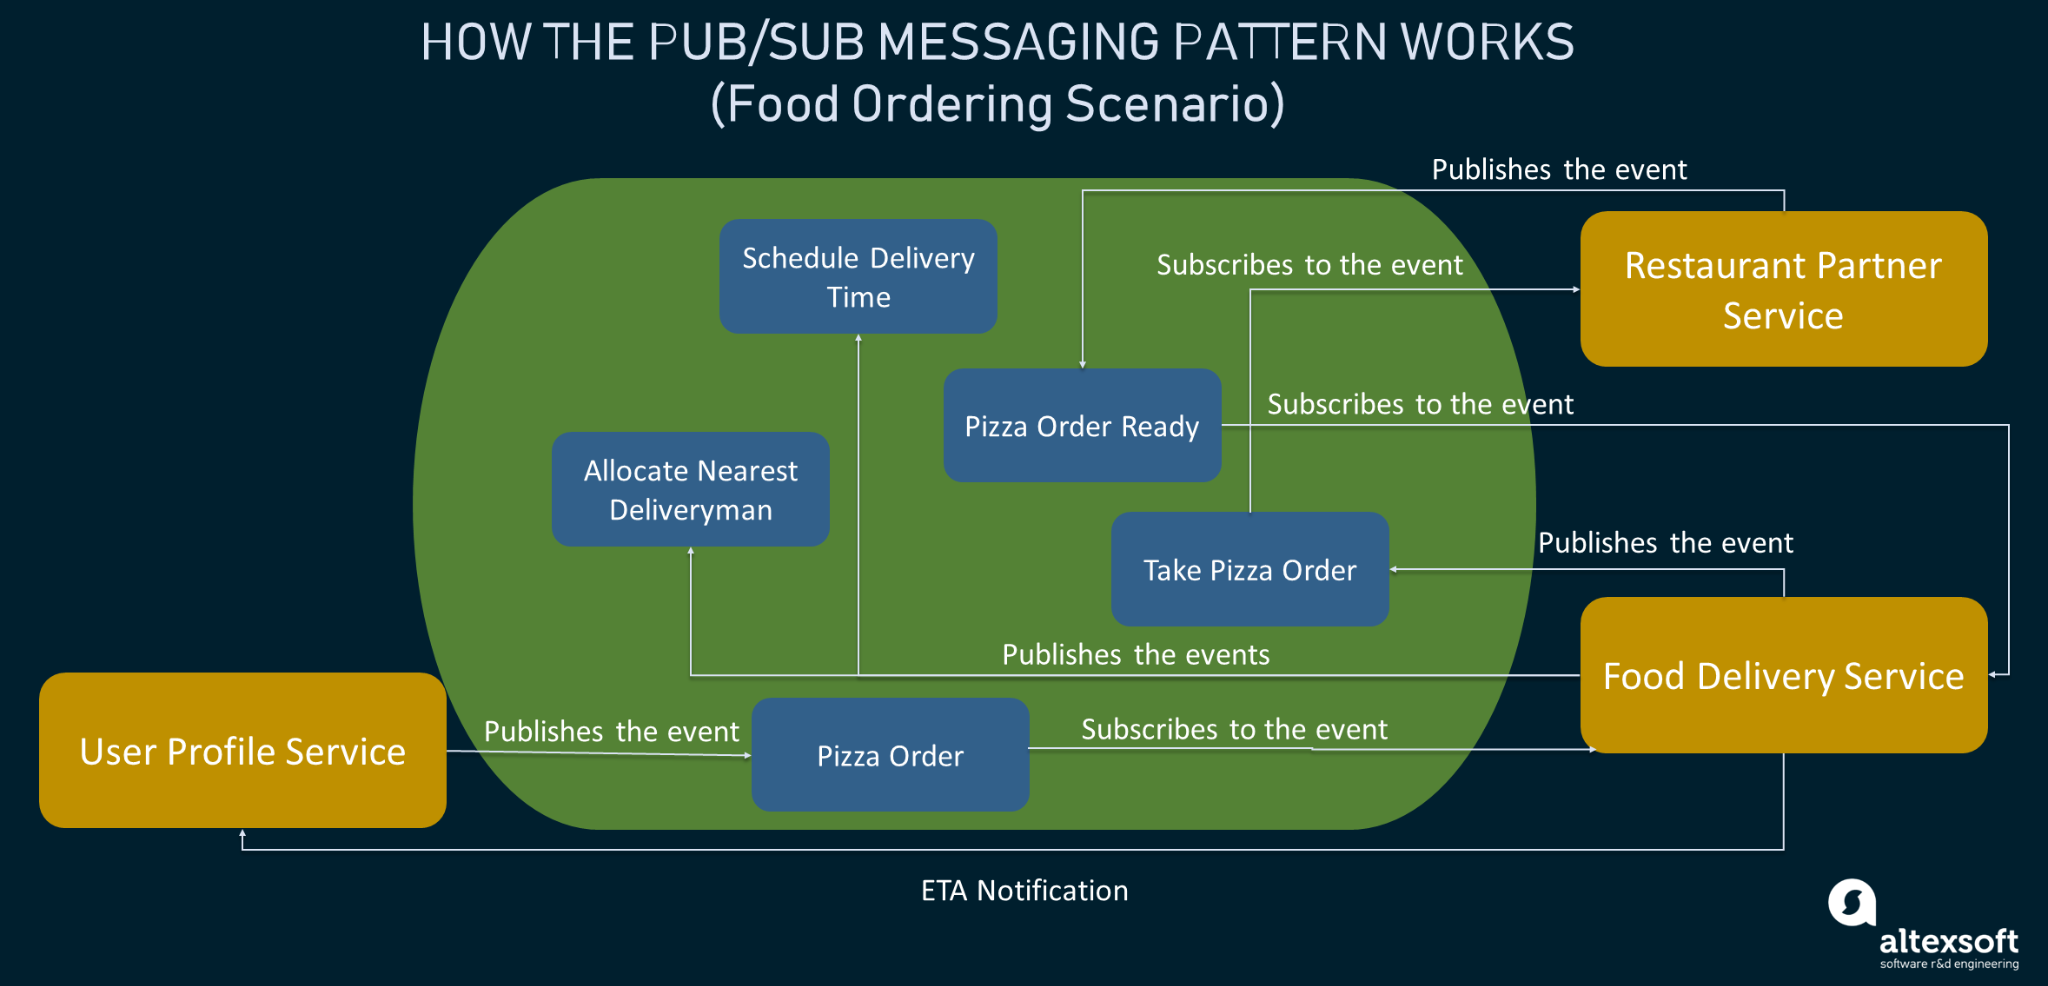 The working principle of the pub/sub system